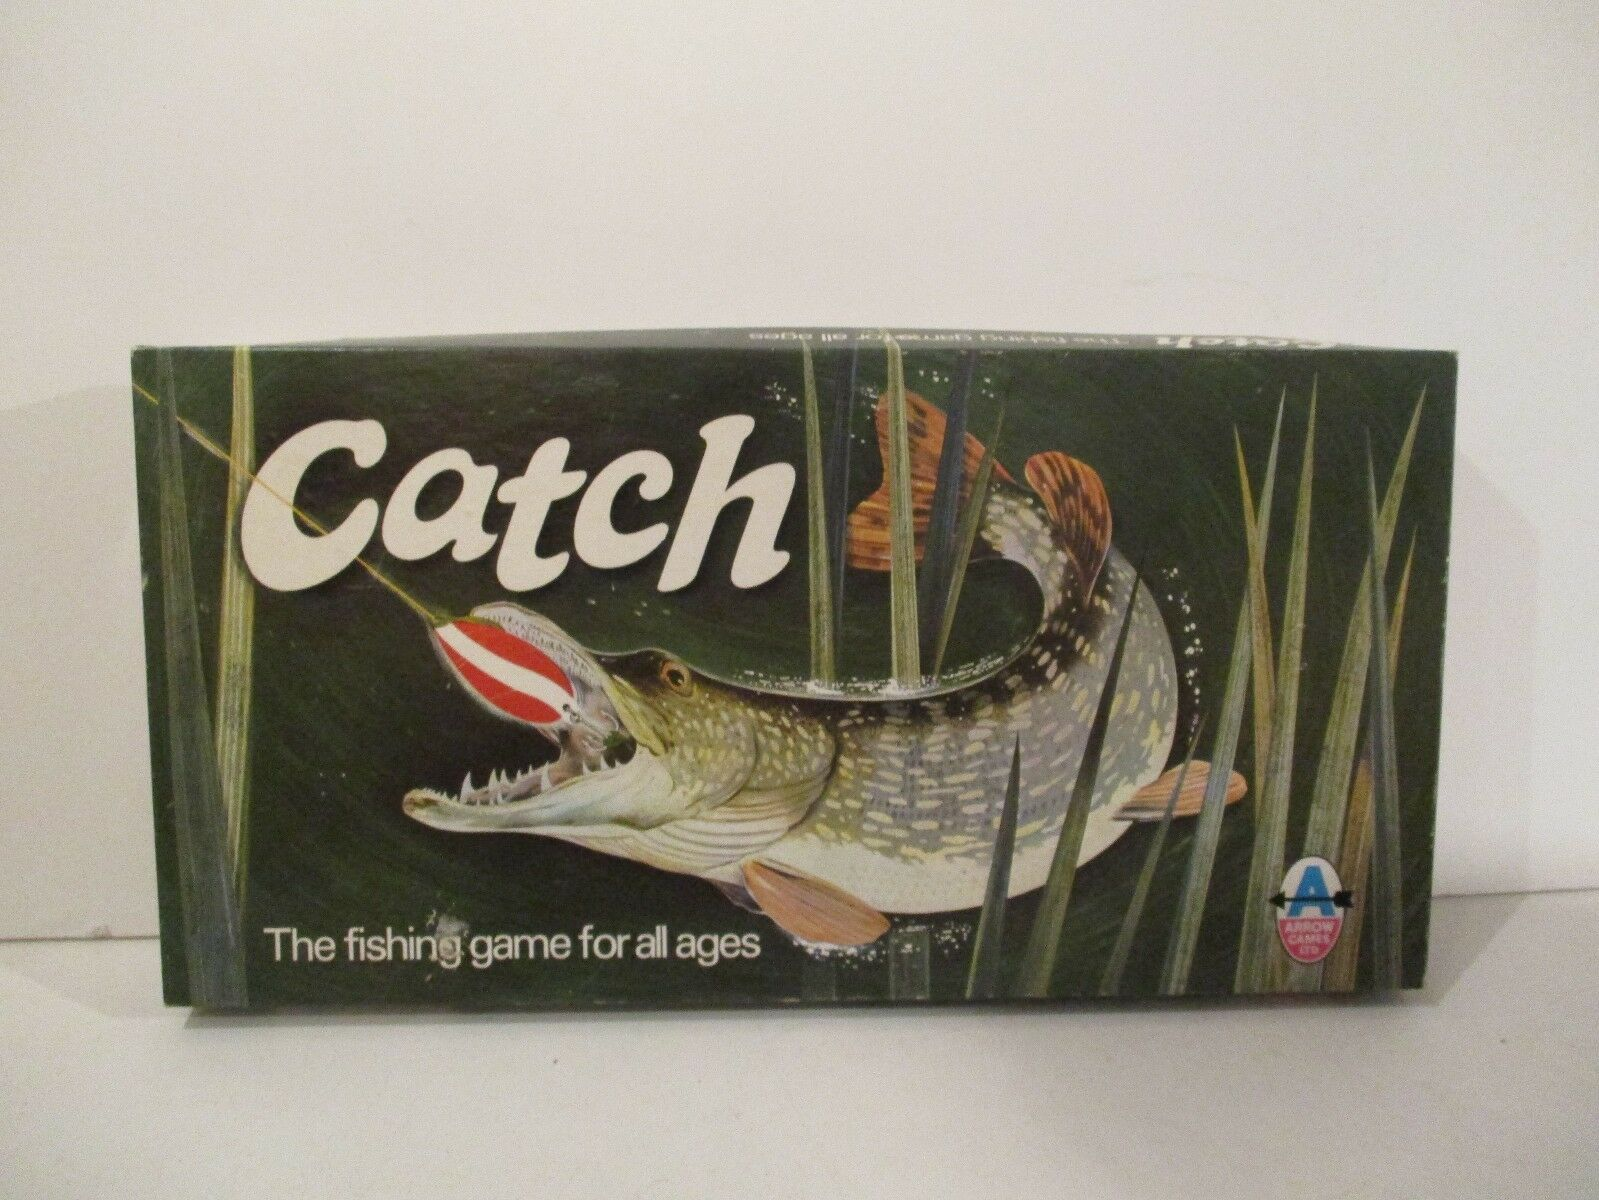 RARE VINTAGE CATCH THE FISHING GAME BY ARROW GAMES C.1960'S 1970'S COMPLETE VGC